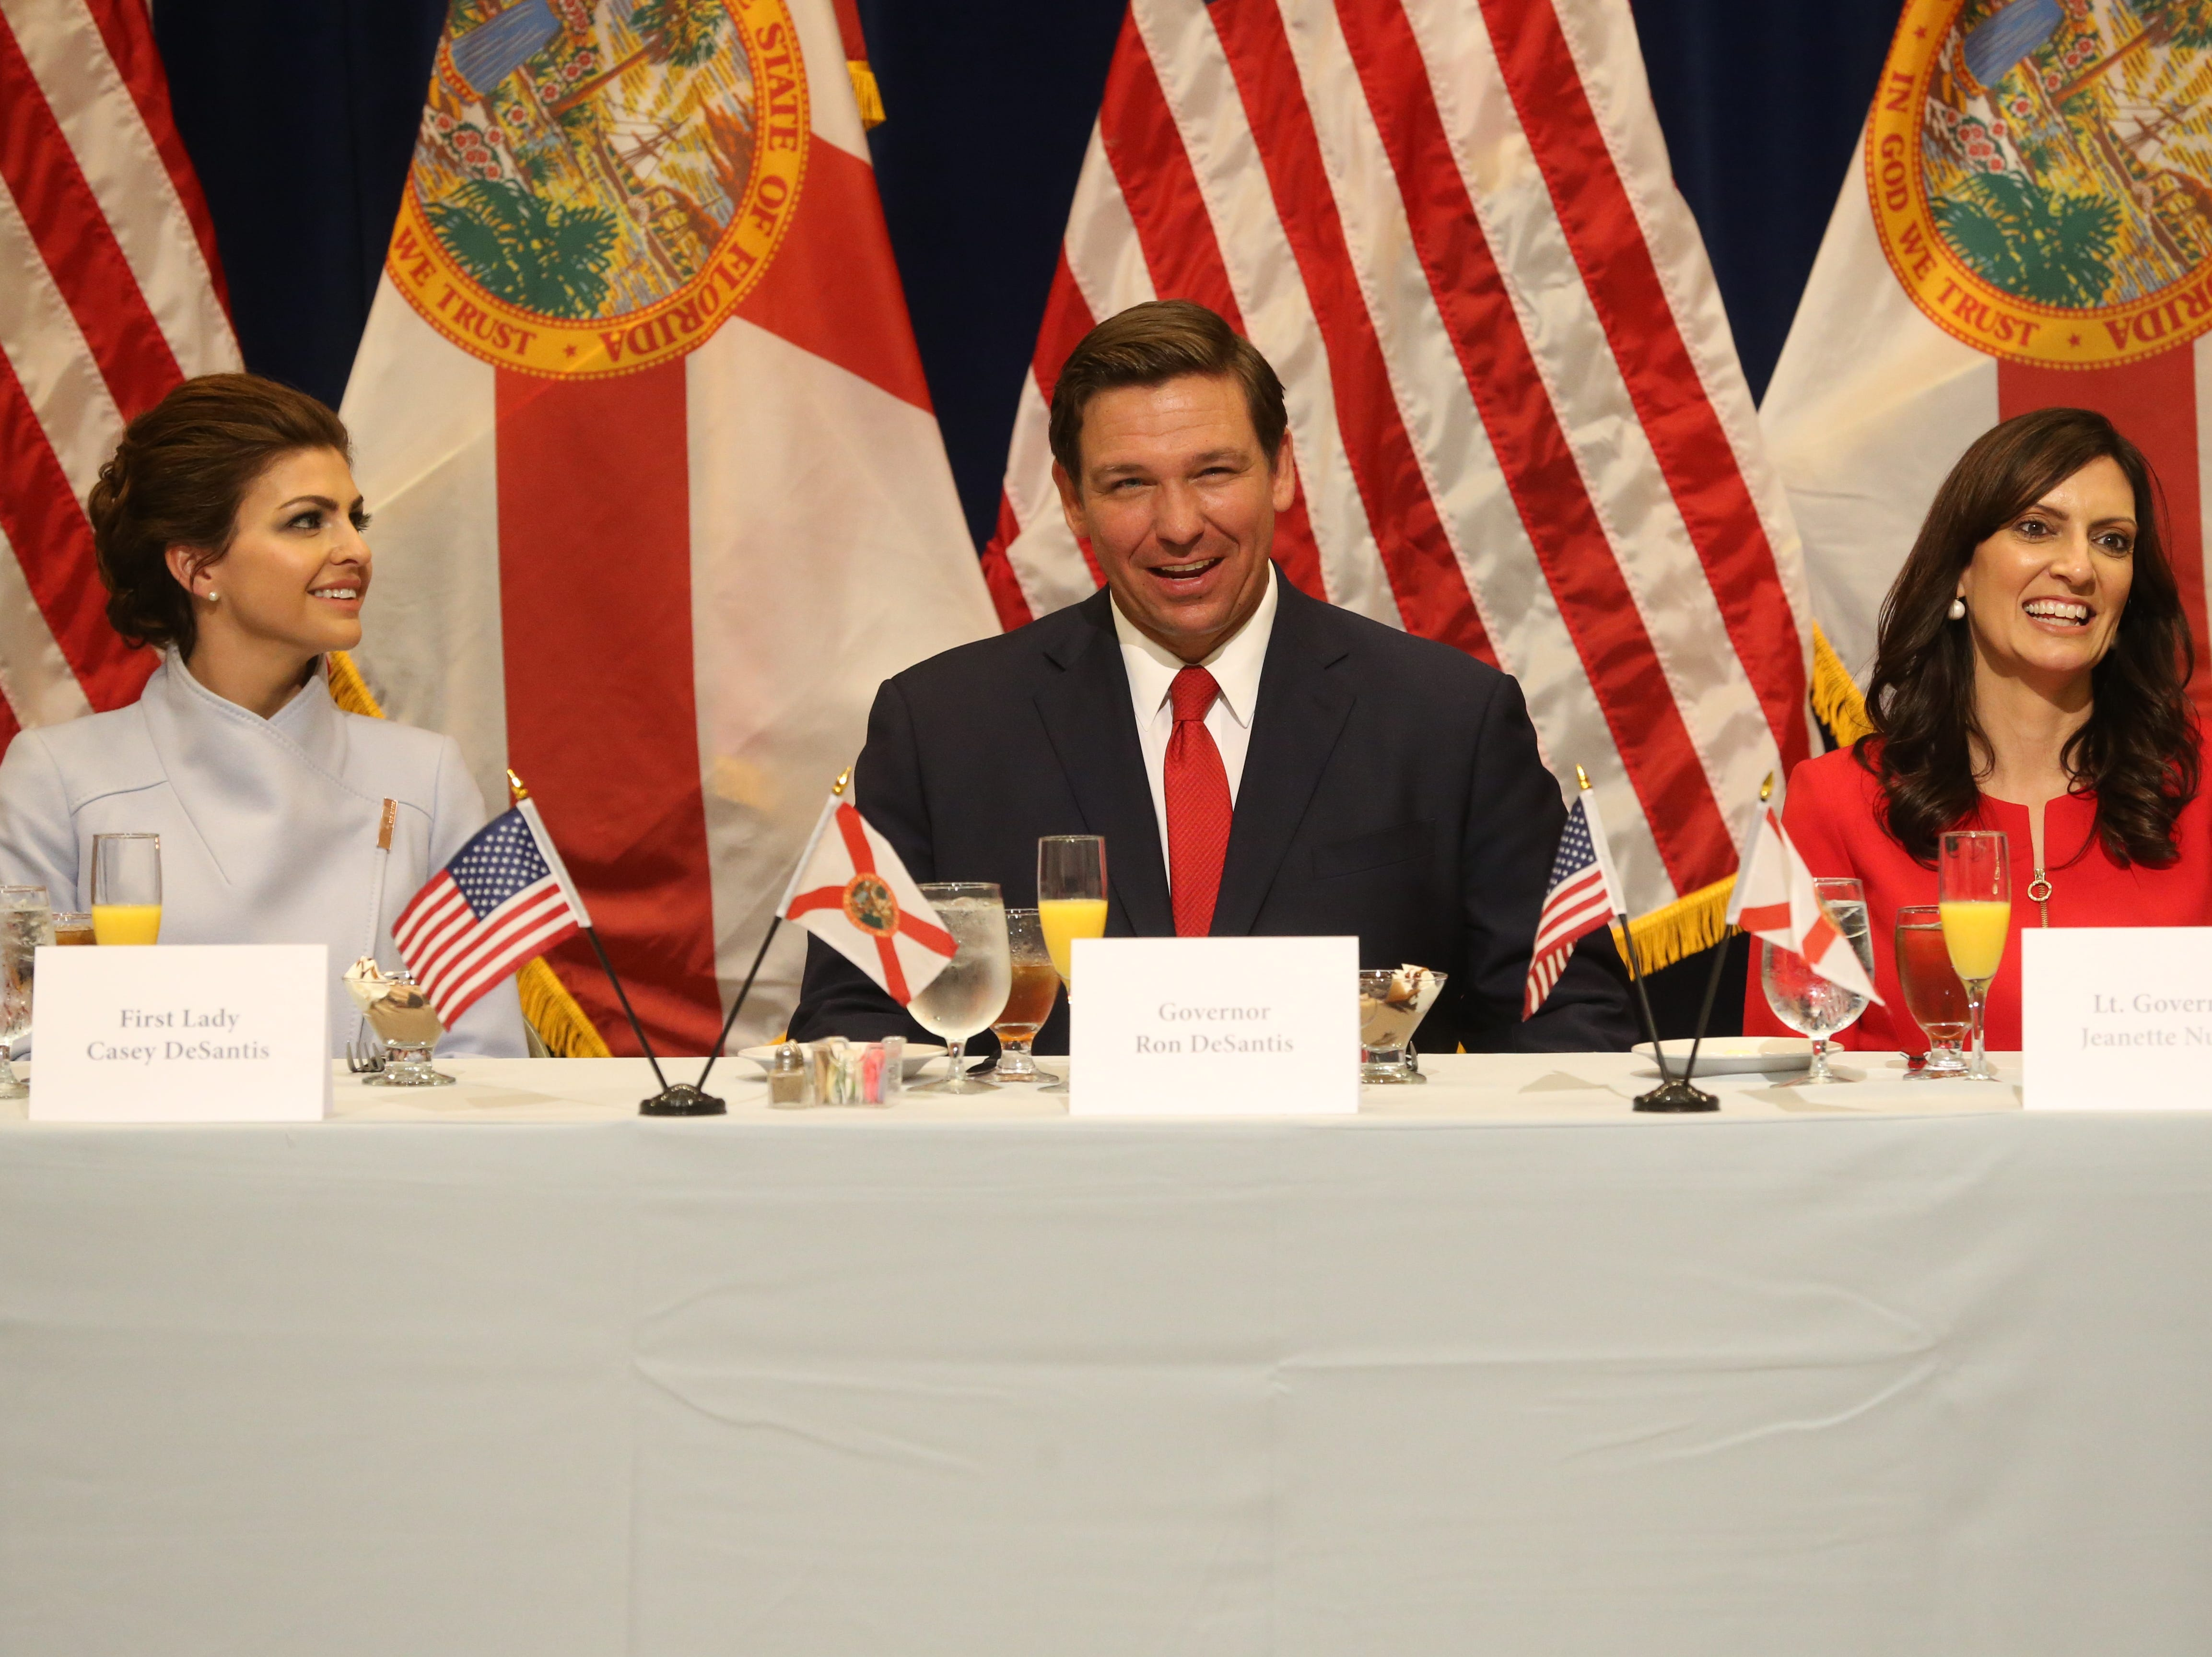 For the first time in Inaugural history, Gov. Ron DeSantis addresses FloridaÕs Legislative leaders and Cabinet officials. DeSantis discusses his plans to work with our stateÕs elected leaders to achieve a Bold Vision for a Brighter Future, Tuesday, Jan. 8, 2019. First lady Casey DeSantis, left, Gov. Ron DeSantis, and Lt. Gov. Jeanette Nunez chuckle during a toast.